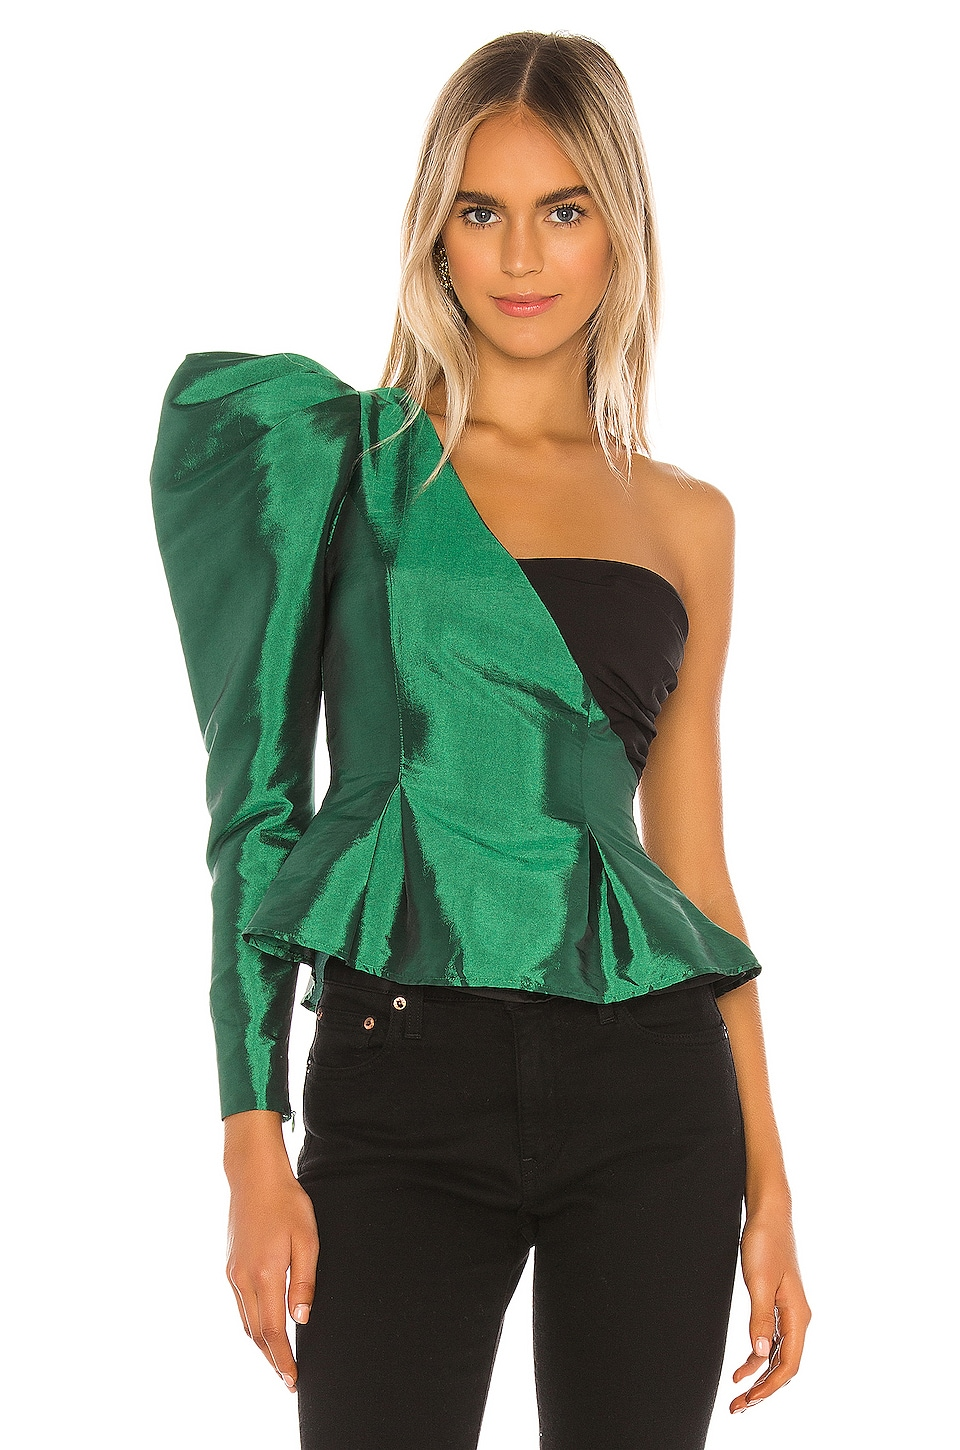 Song of Style Janet Top in Green & Black